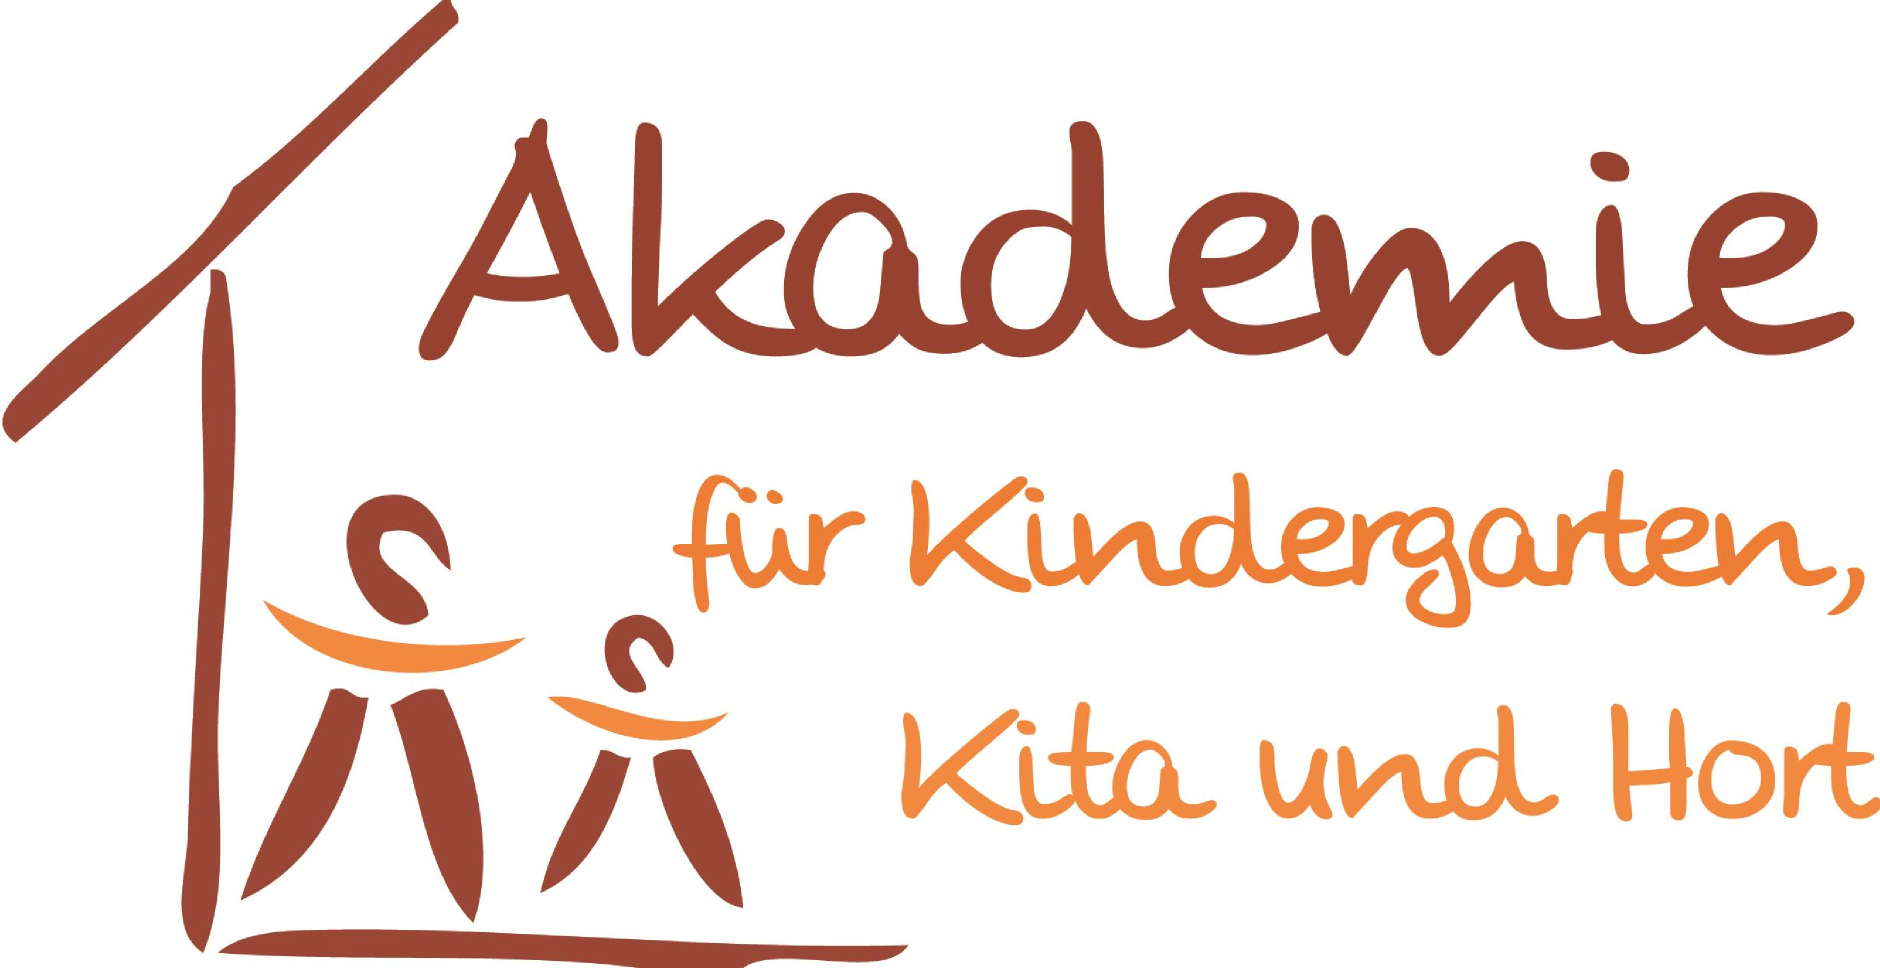 Seit 2013 gebe ich als Kindergartencoach auch Seminare für die Kindergartenakademie.